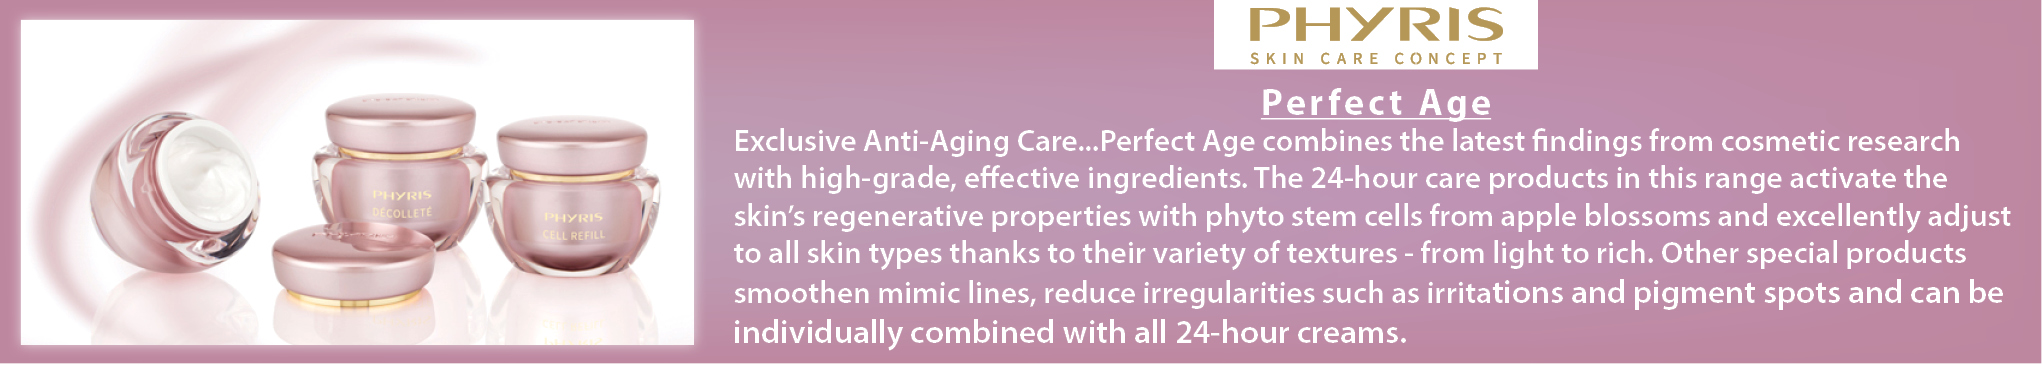 phy-perf-age-category-banner-980x175.jpg